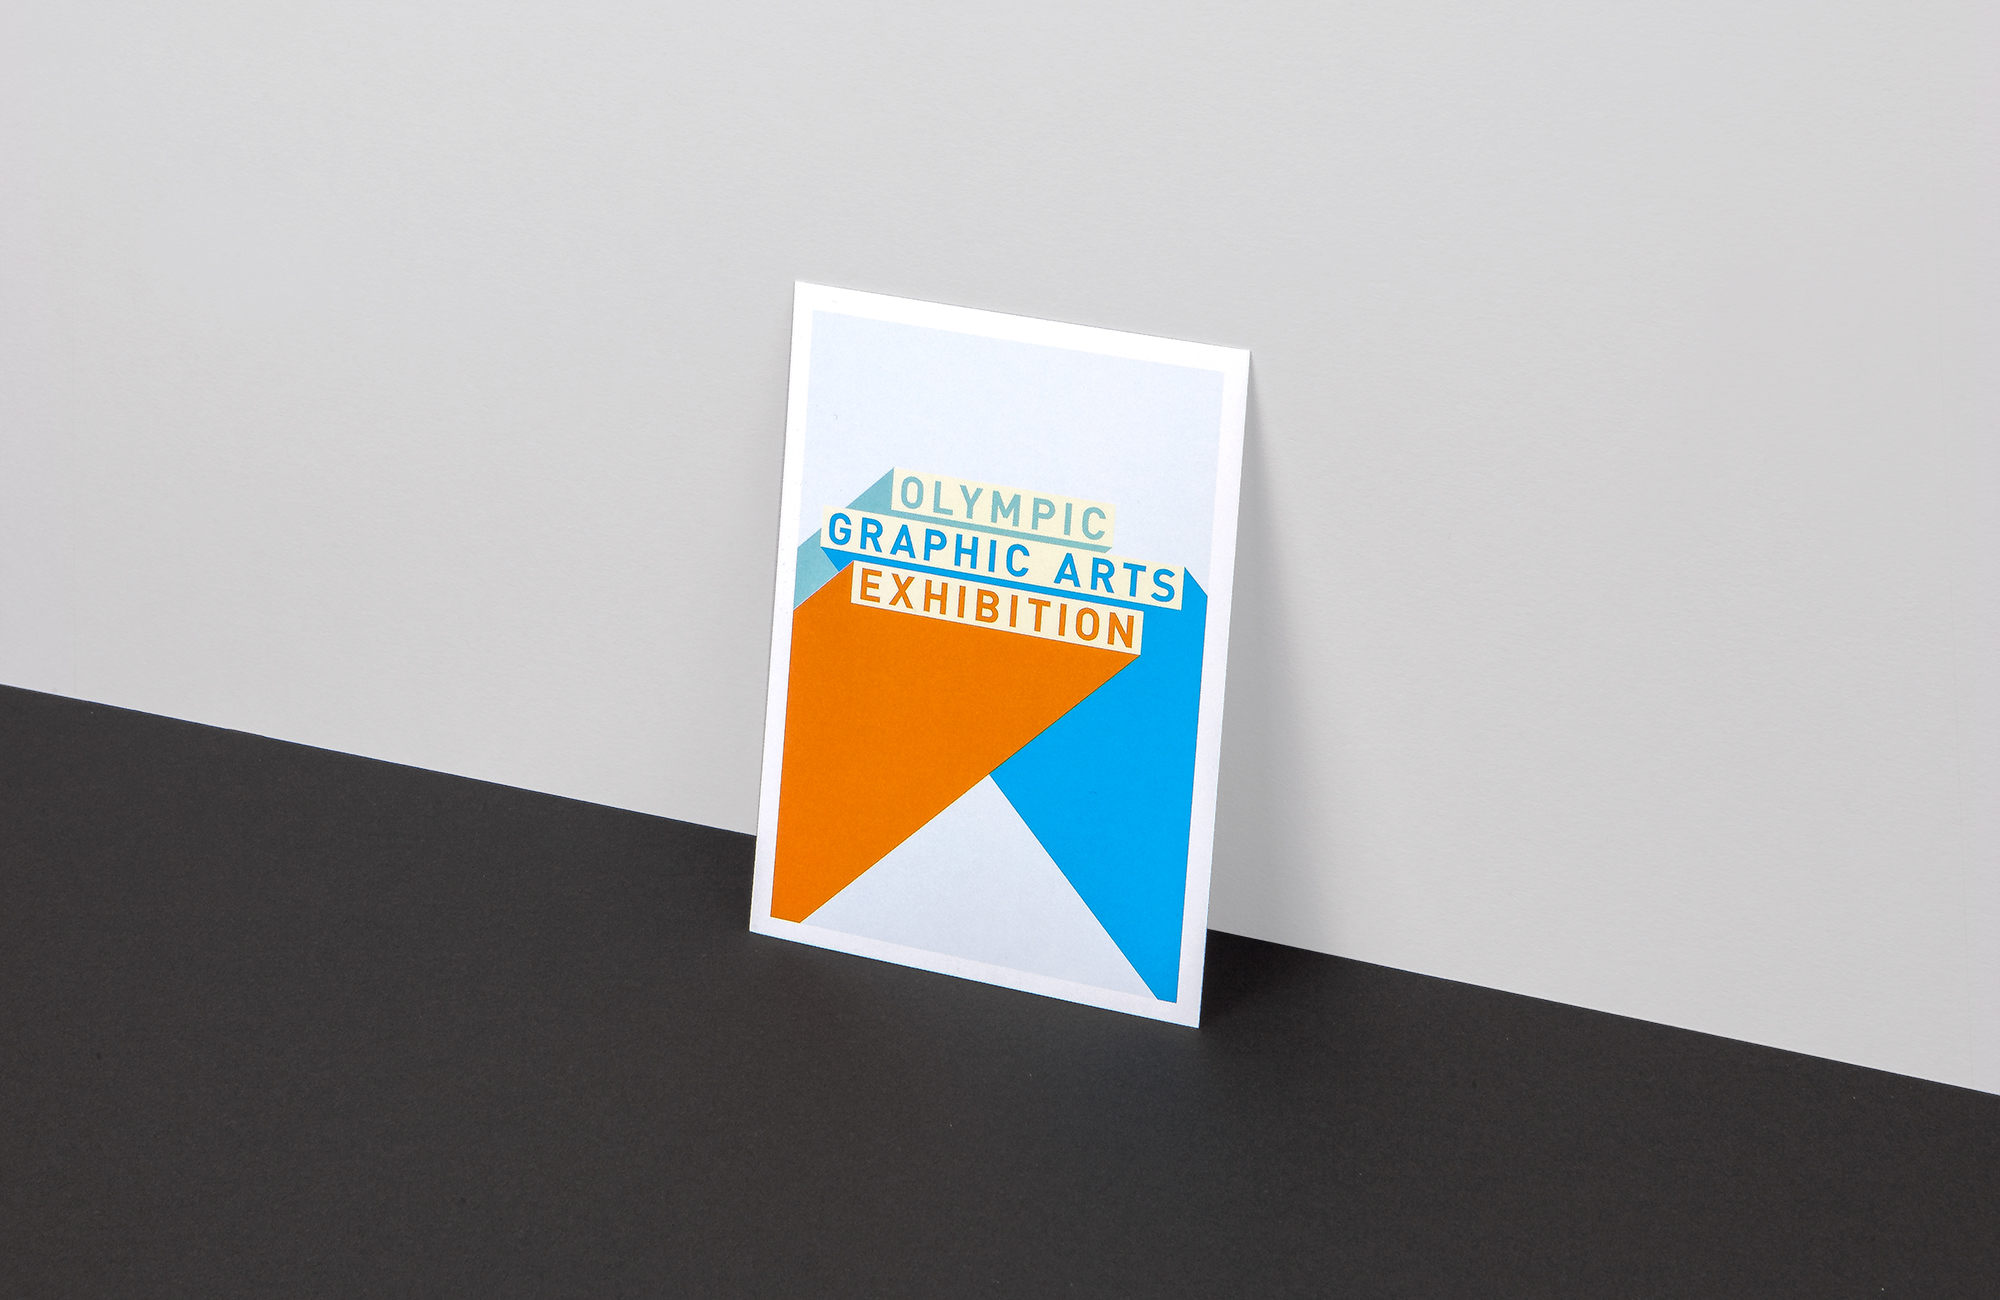 All Works Co._Graphic_Design_Studio_London_OlympicGraphicsArtsExhibition_Campaign_Print_Postcard